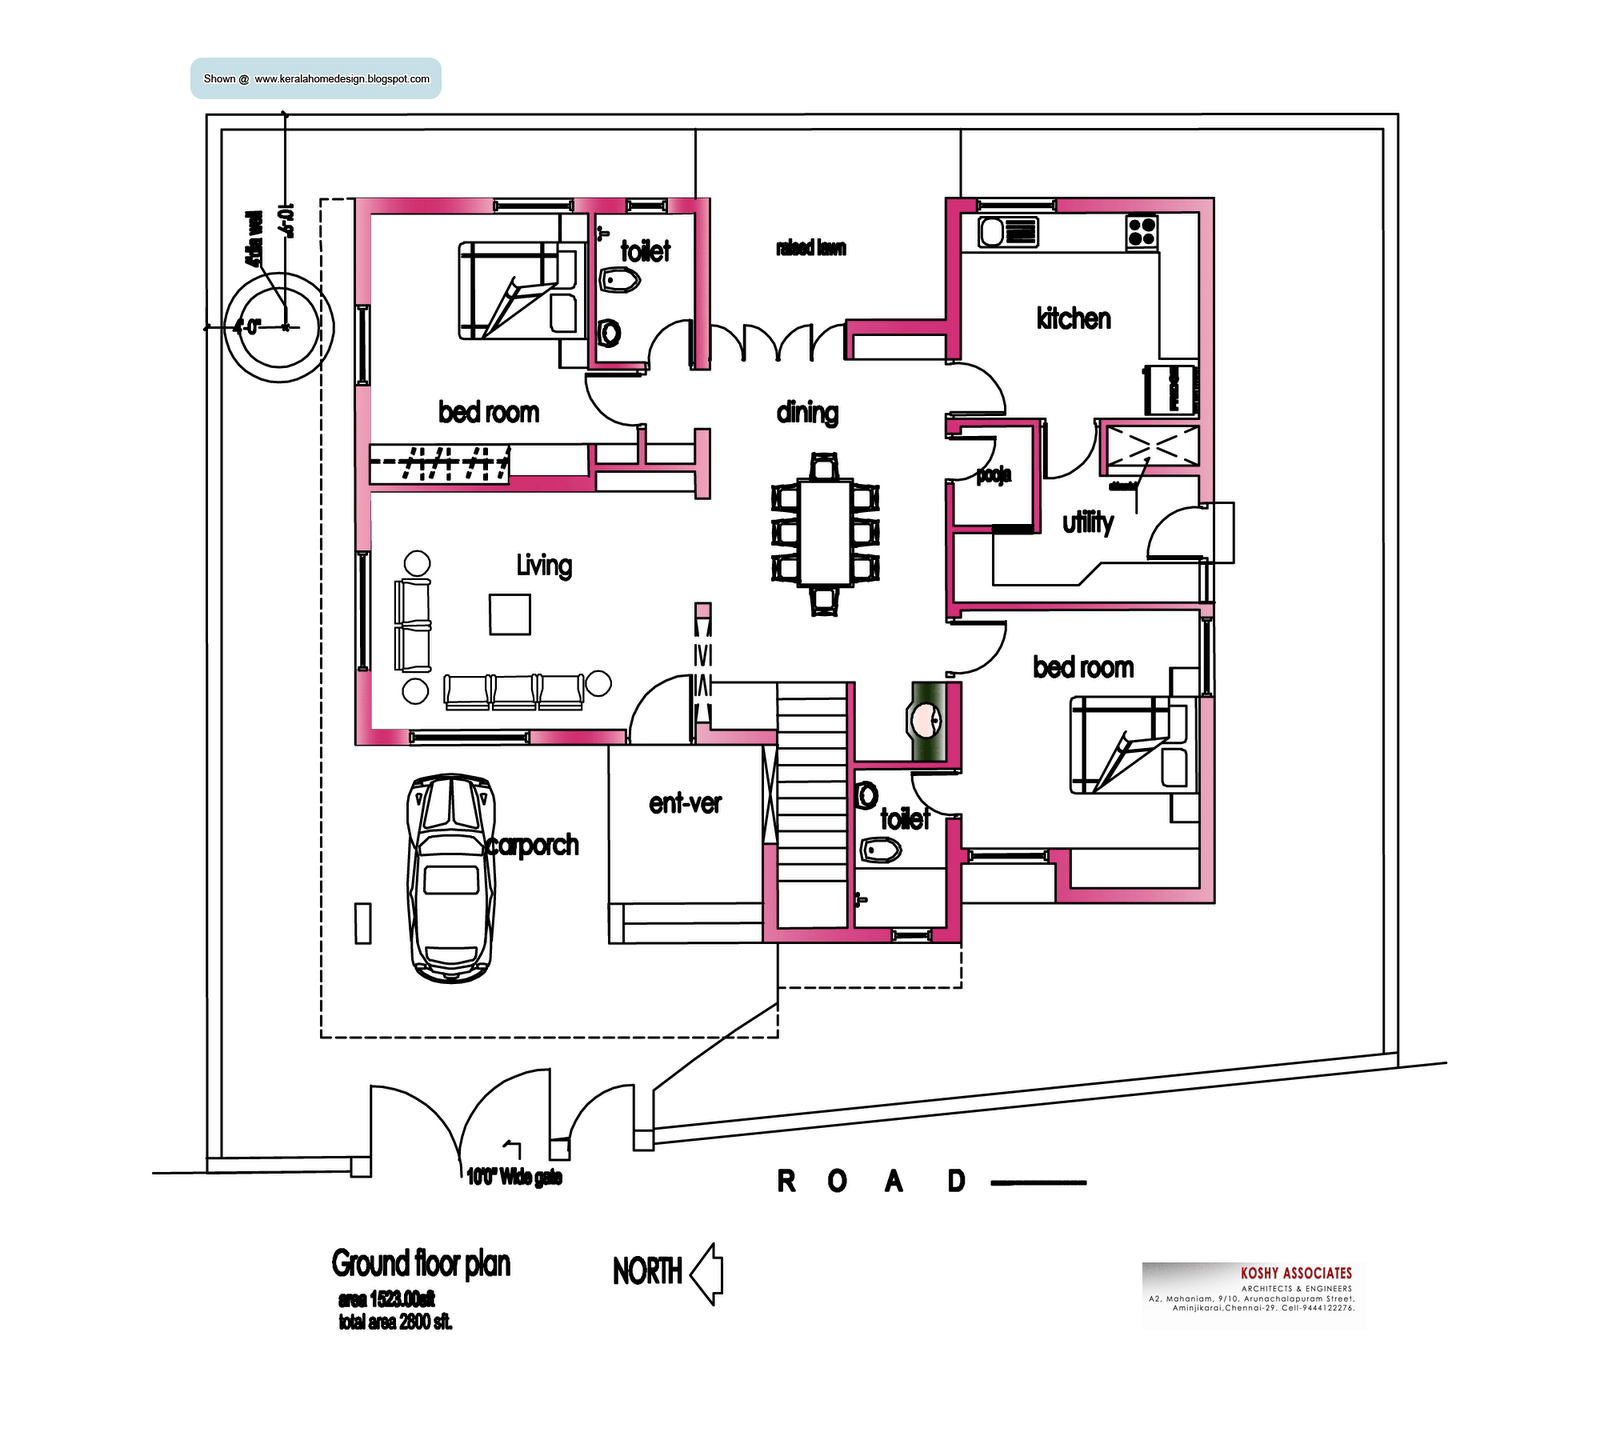 Image detail for modern house plan 2800 sq ft kerala for Houses and house plans